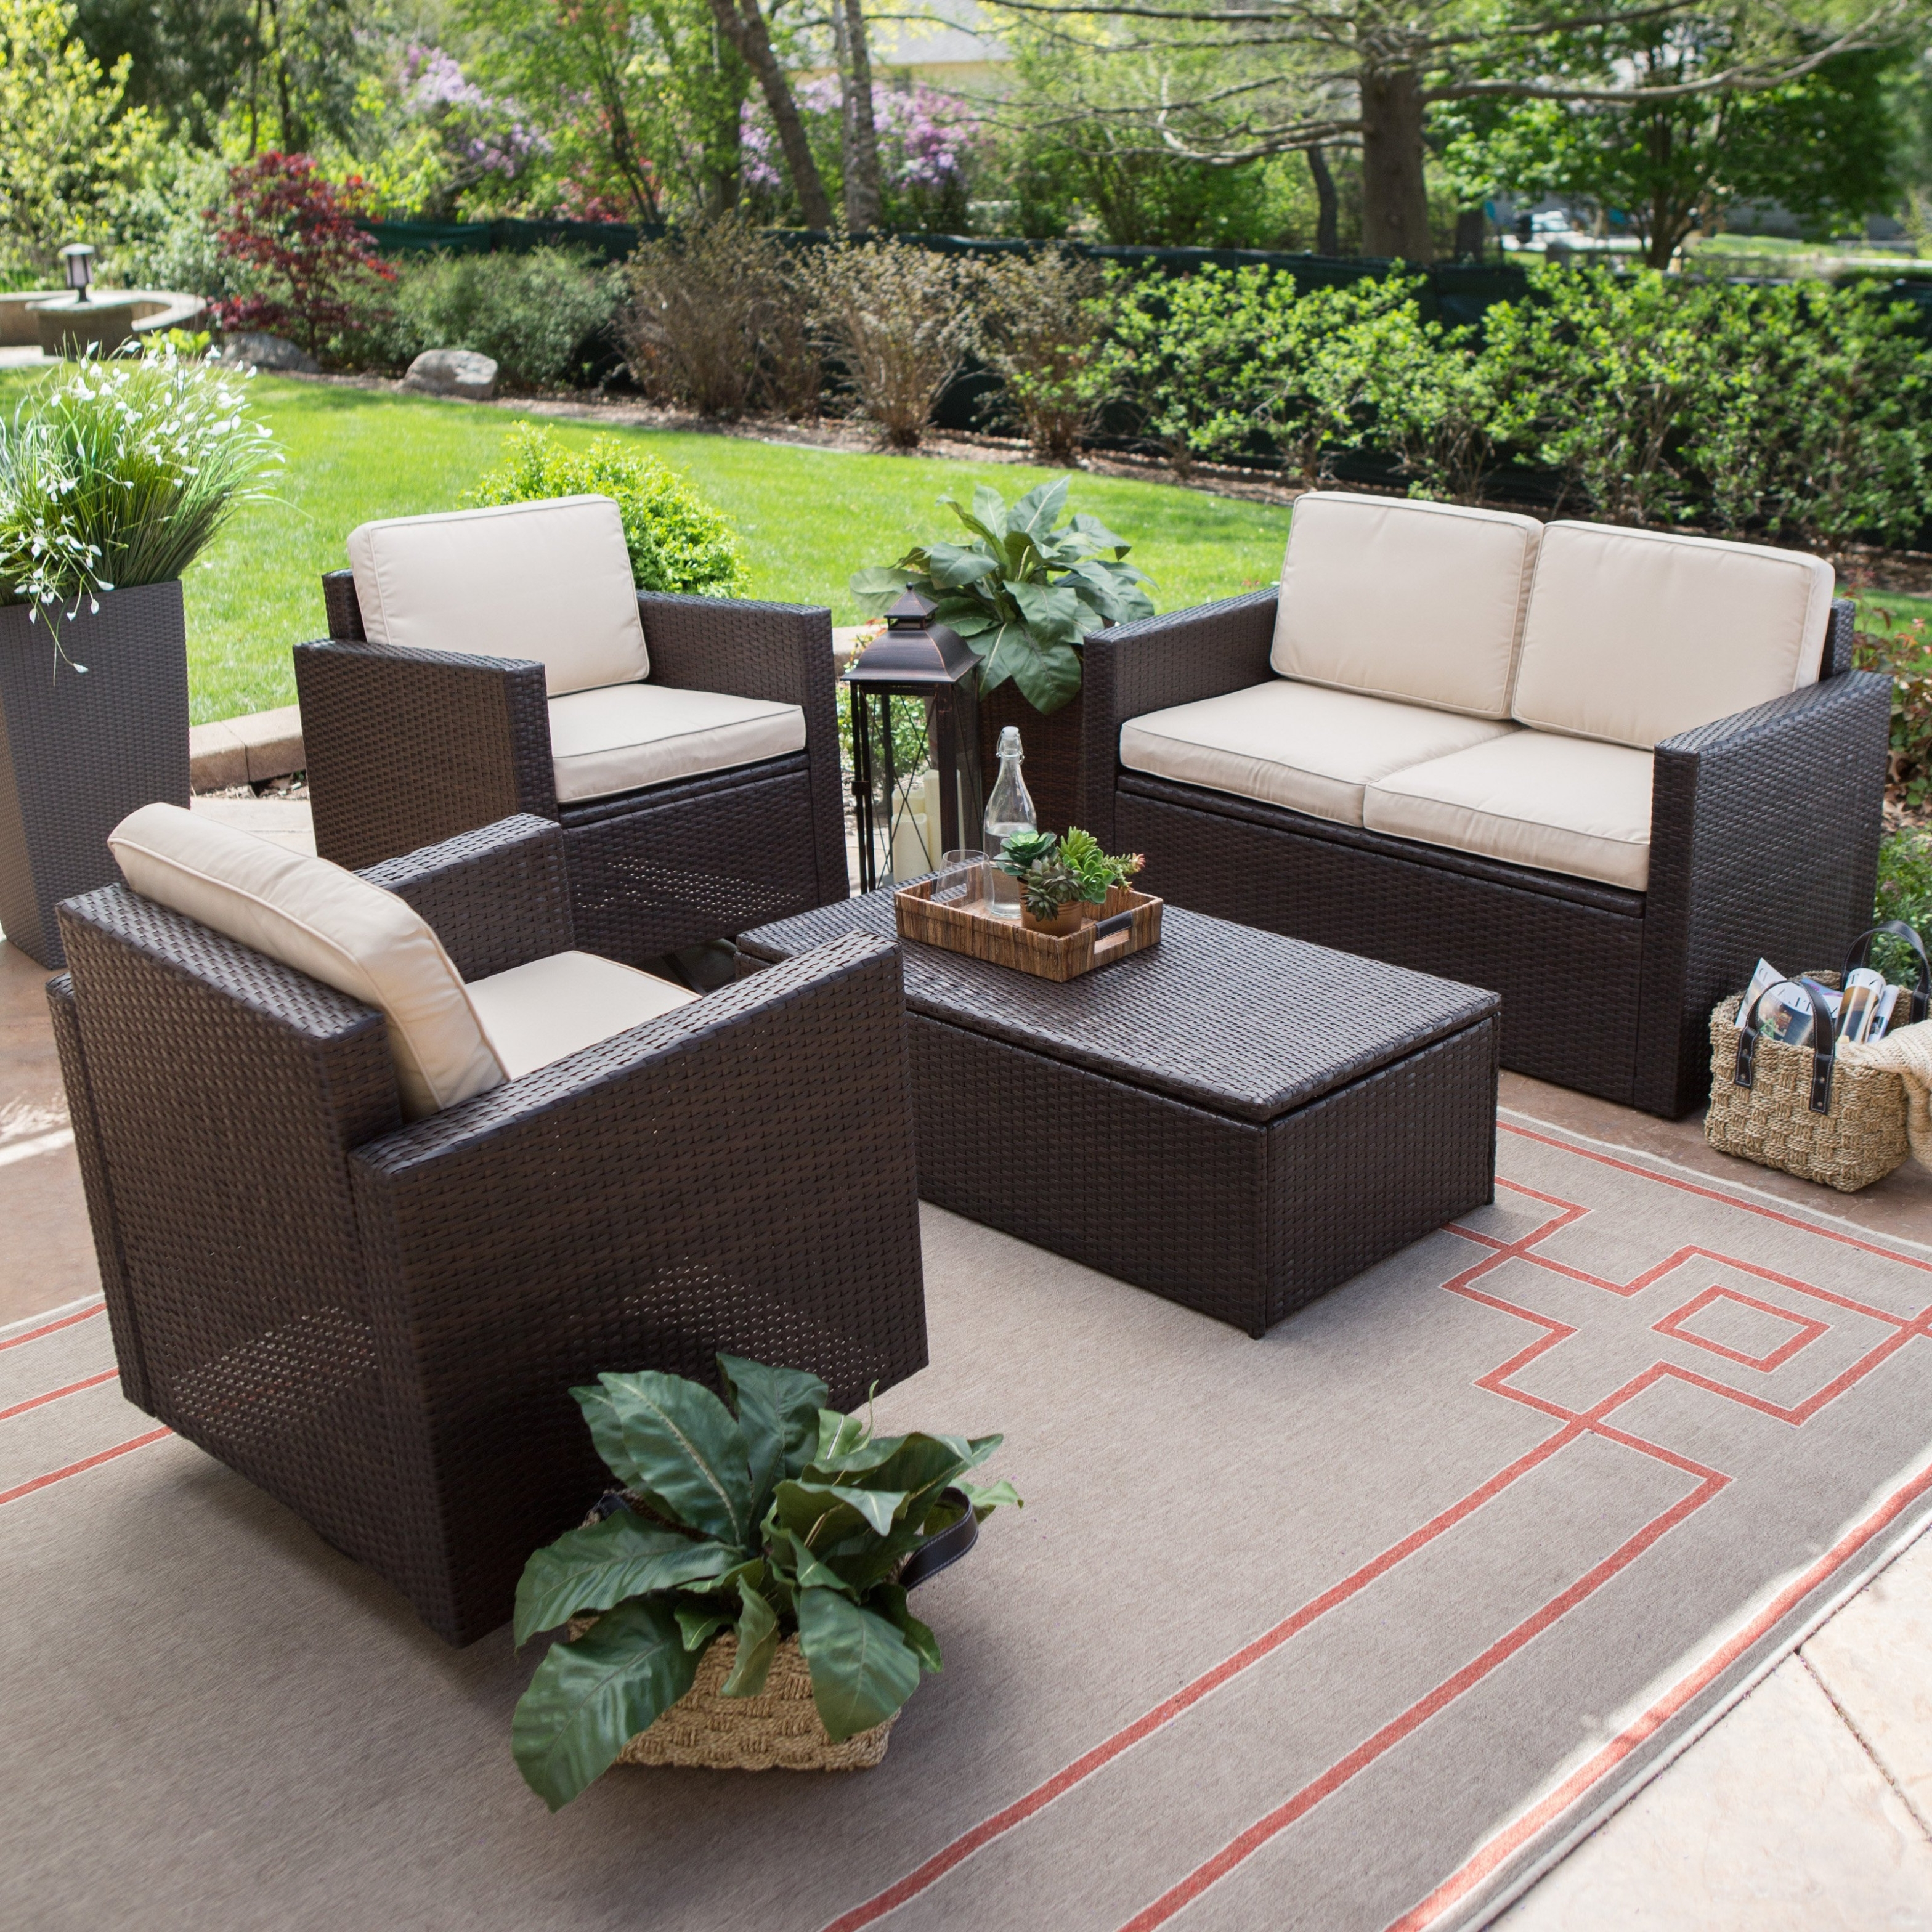 Preferred 30 Luxury Small Sectional Patio Furniture Concept Throughout Small Patio Conversation Sets (View 14 of 15)